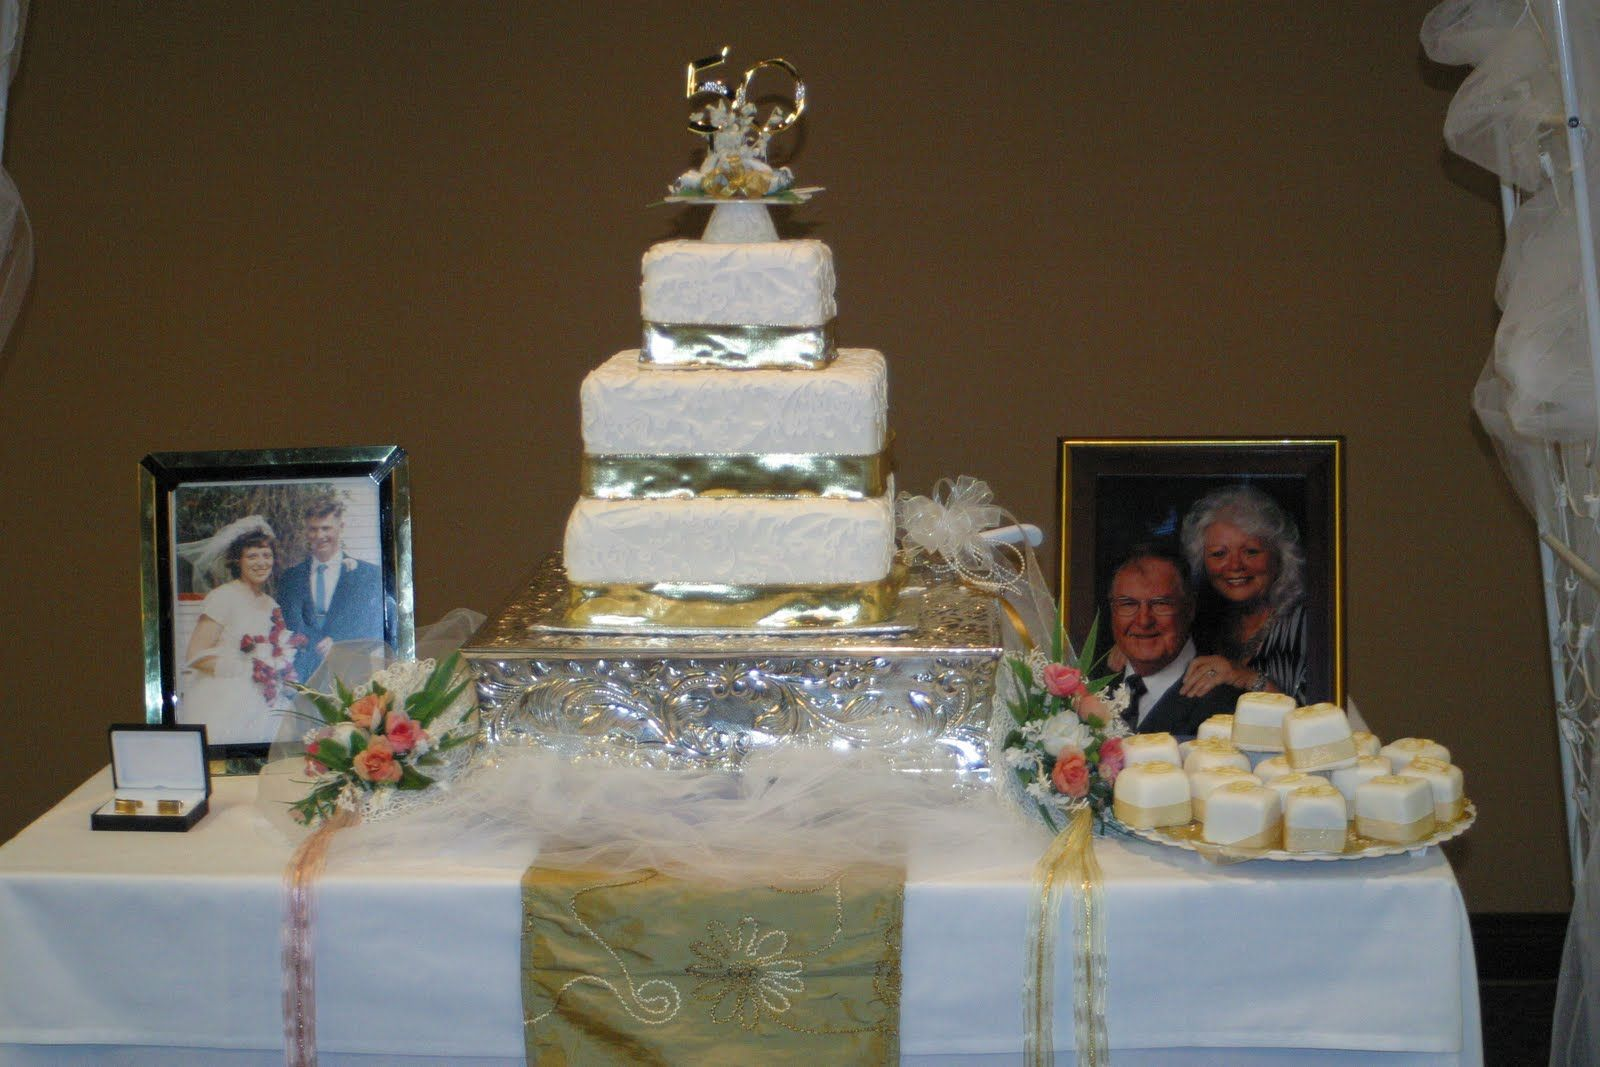 Gift Ideas For 50th Wedding Anniversary Party: 50th Wedding Anniversary On Pinterest